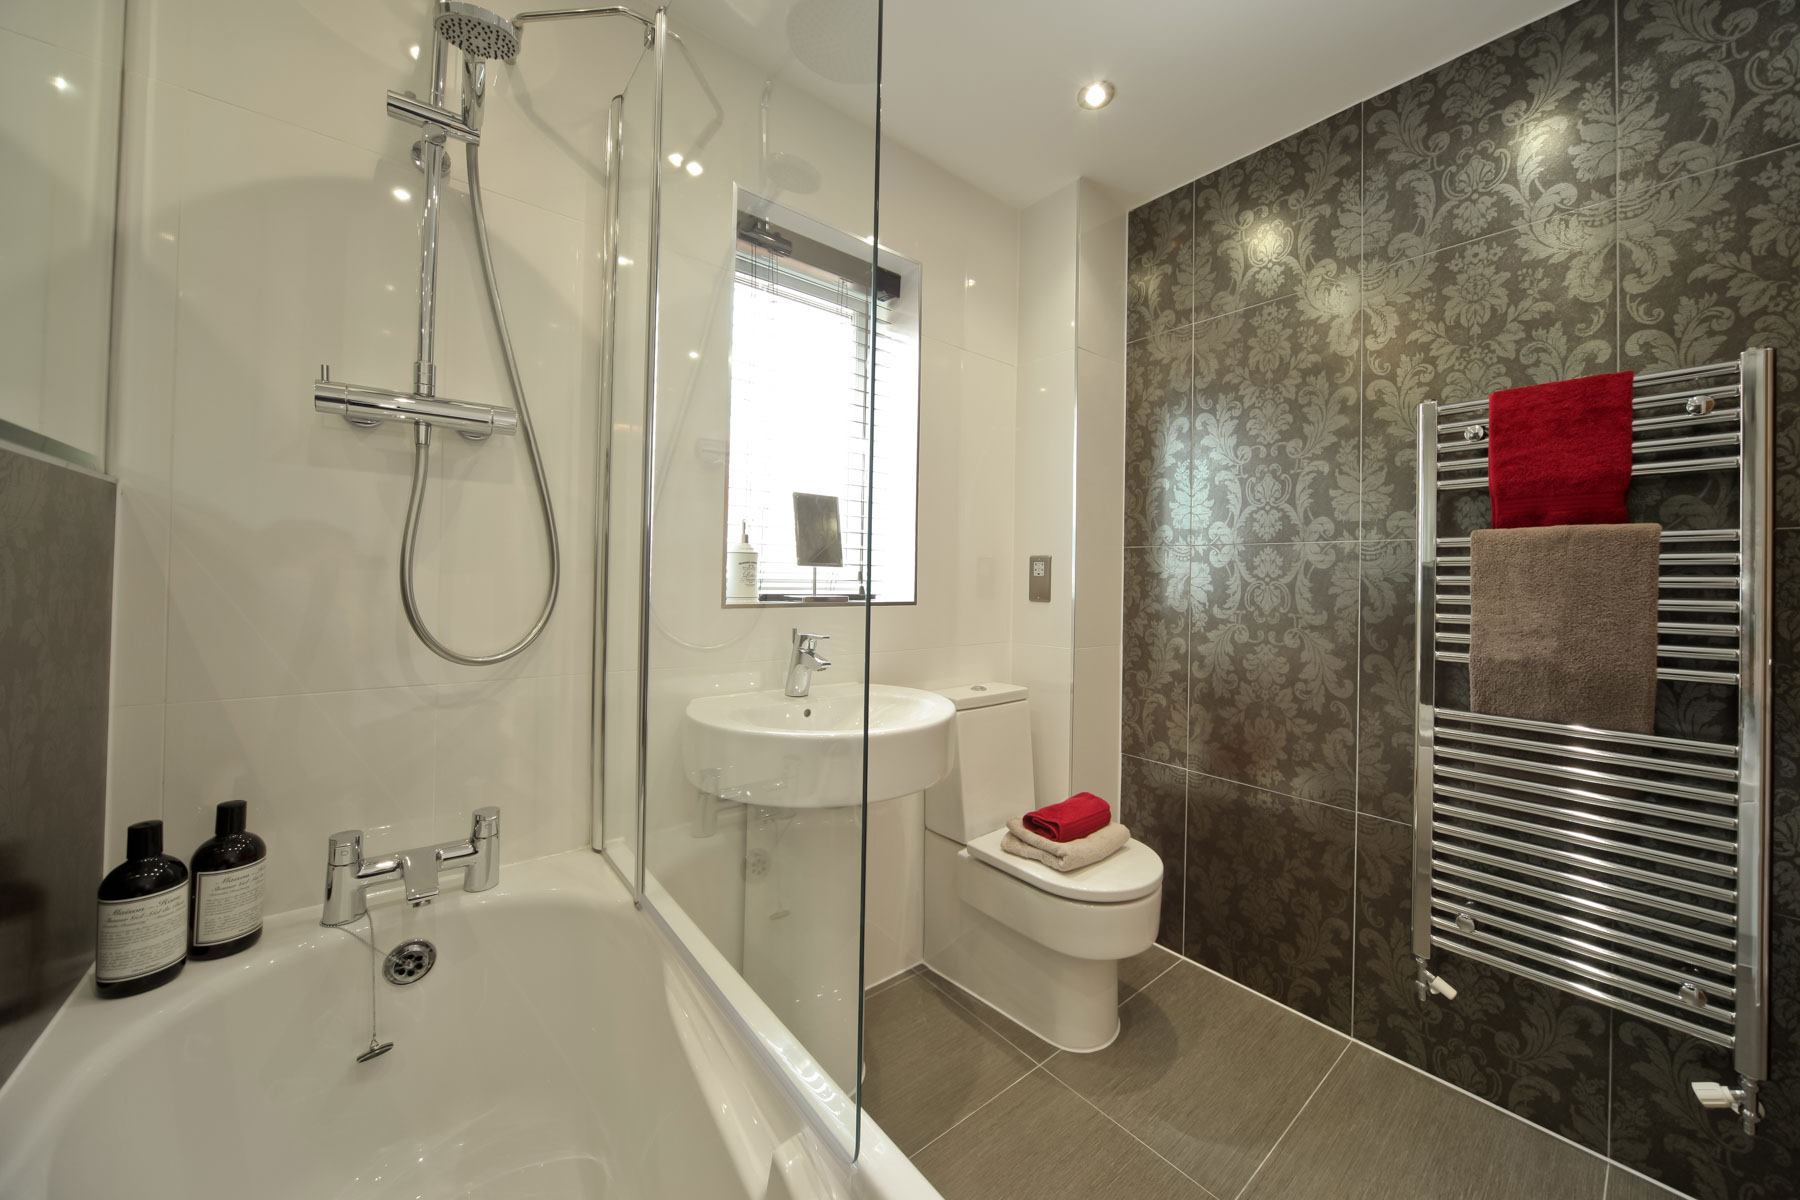 024_WV_Downham_Bathroom